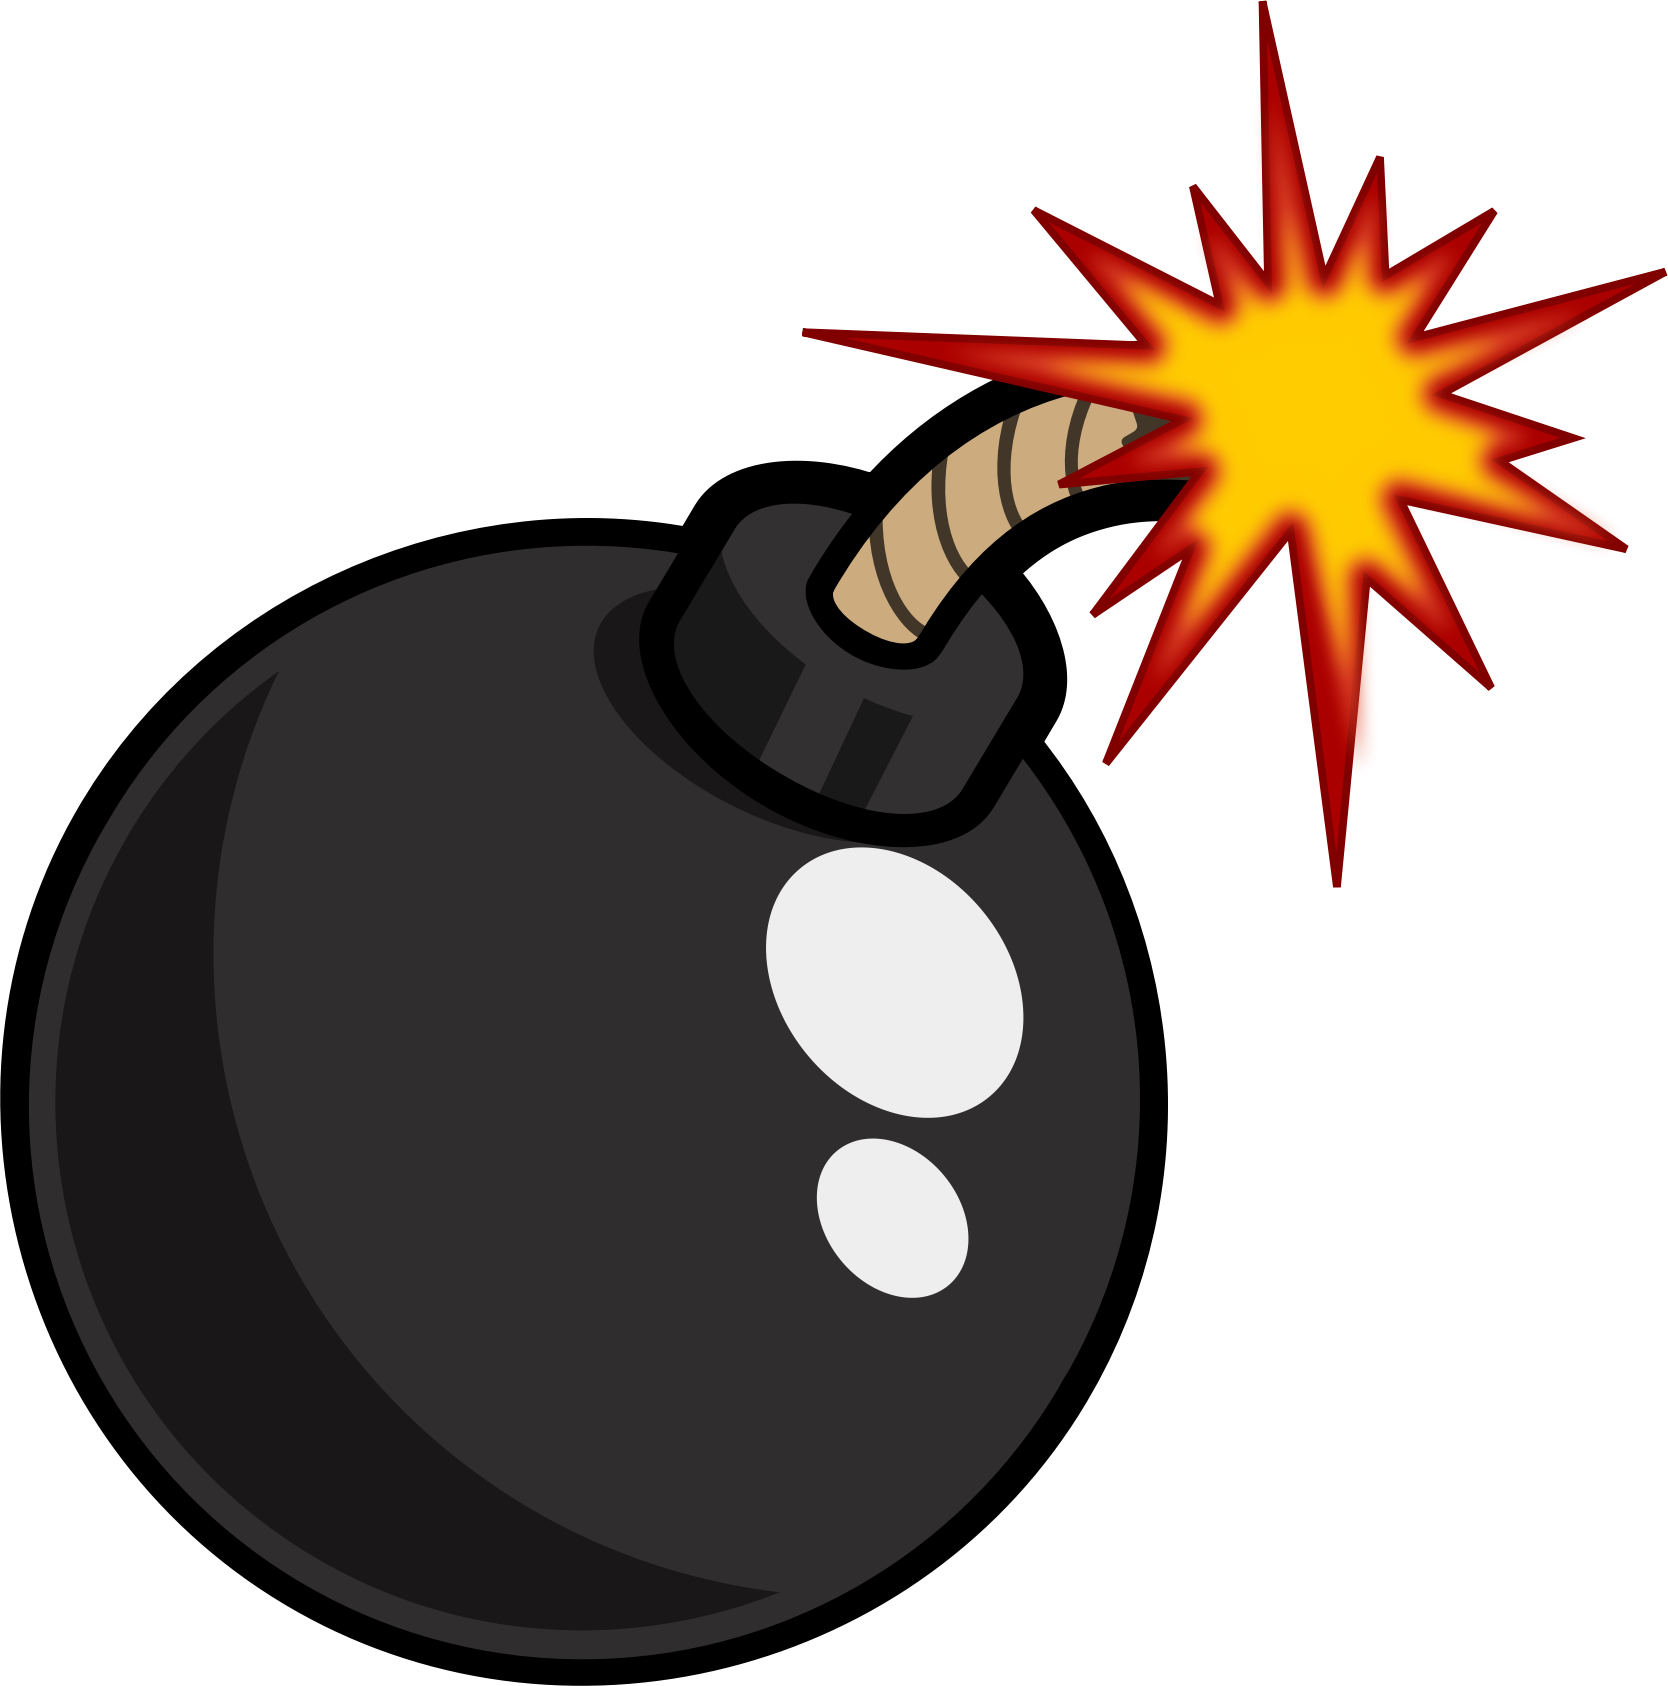 Black Cartoon Bomb by nipponesser